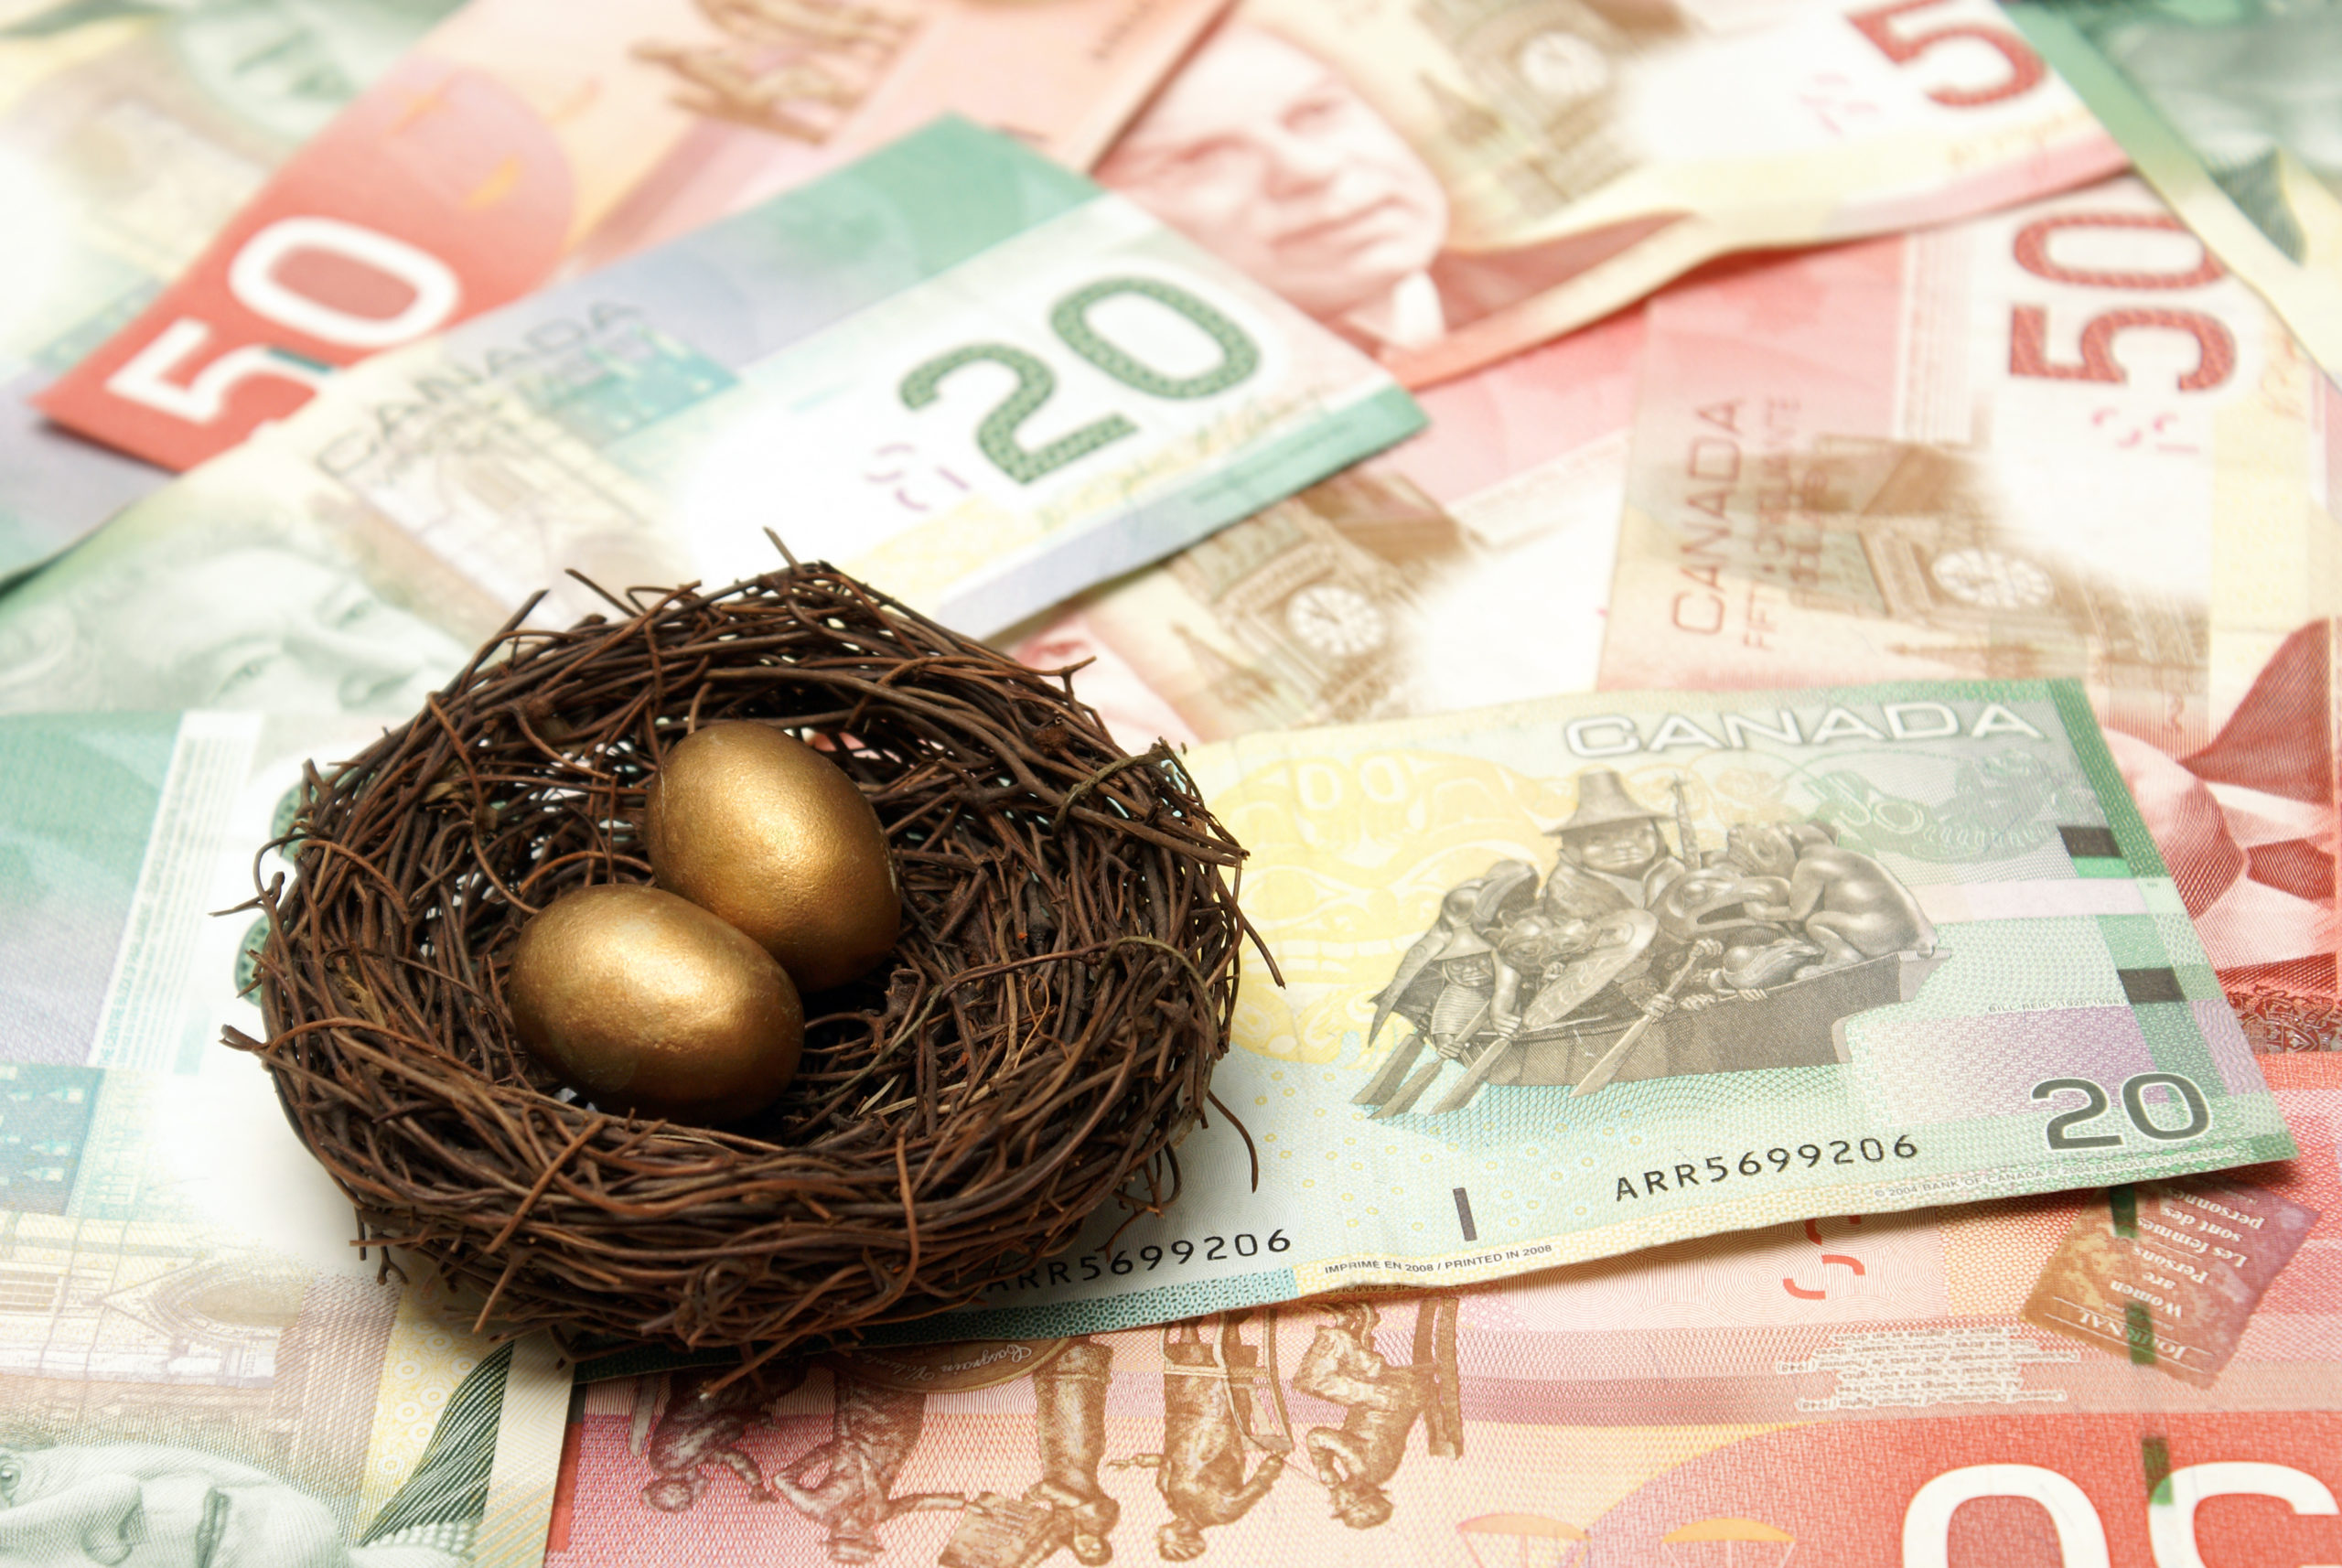 The RRSP Deadline in Canada is March 2nd: Should This Matter to Me?